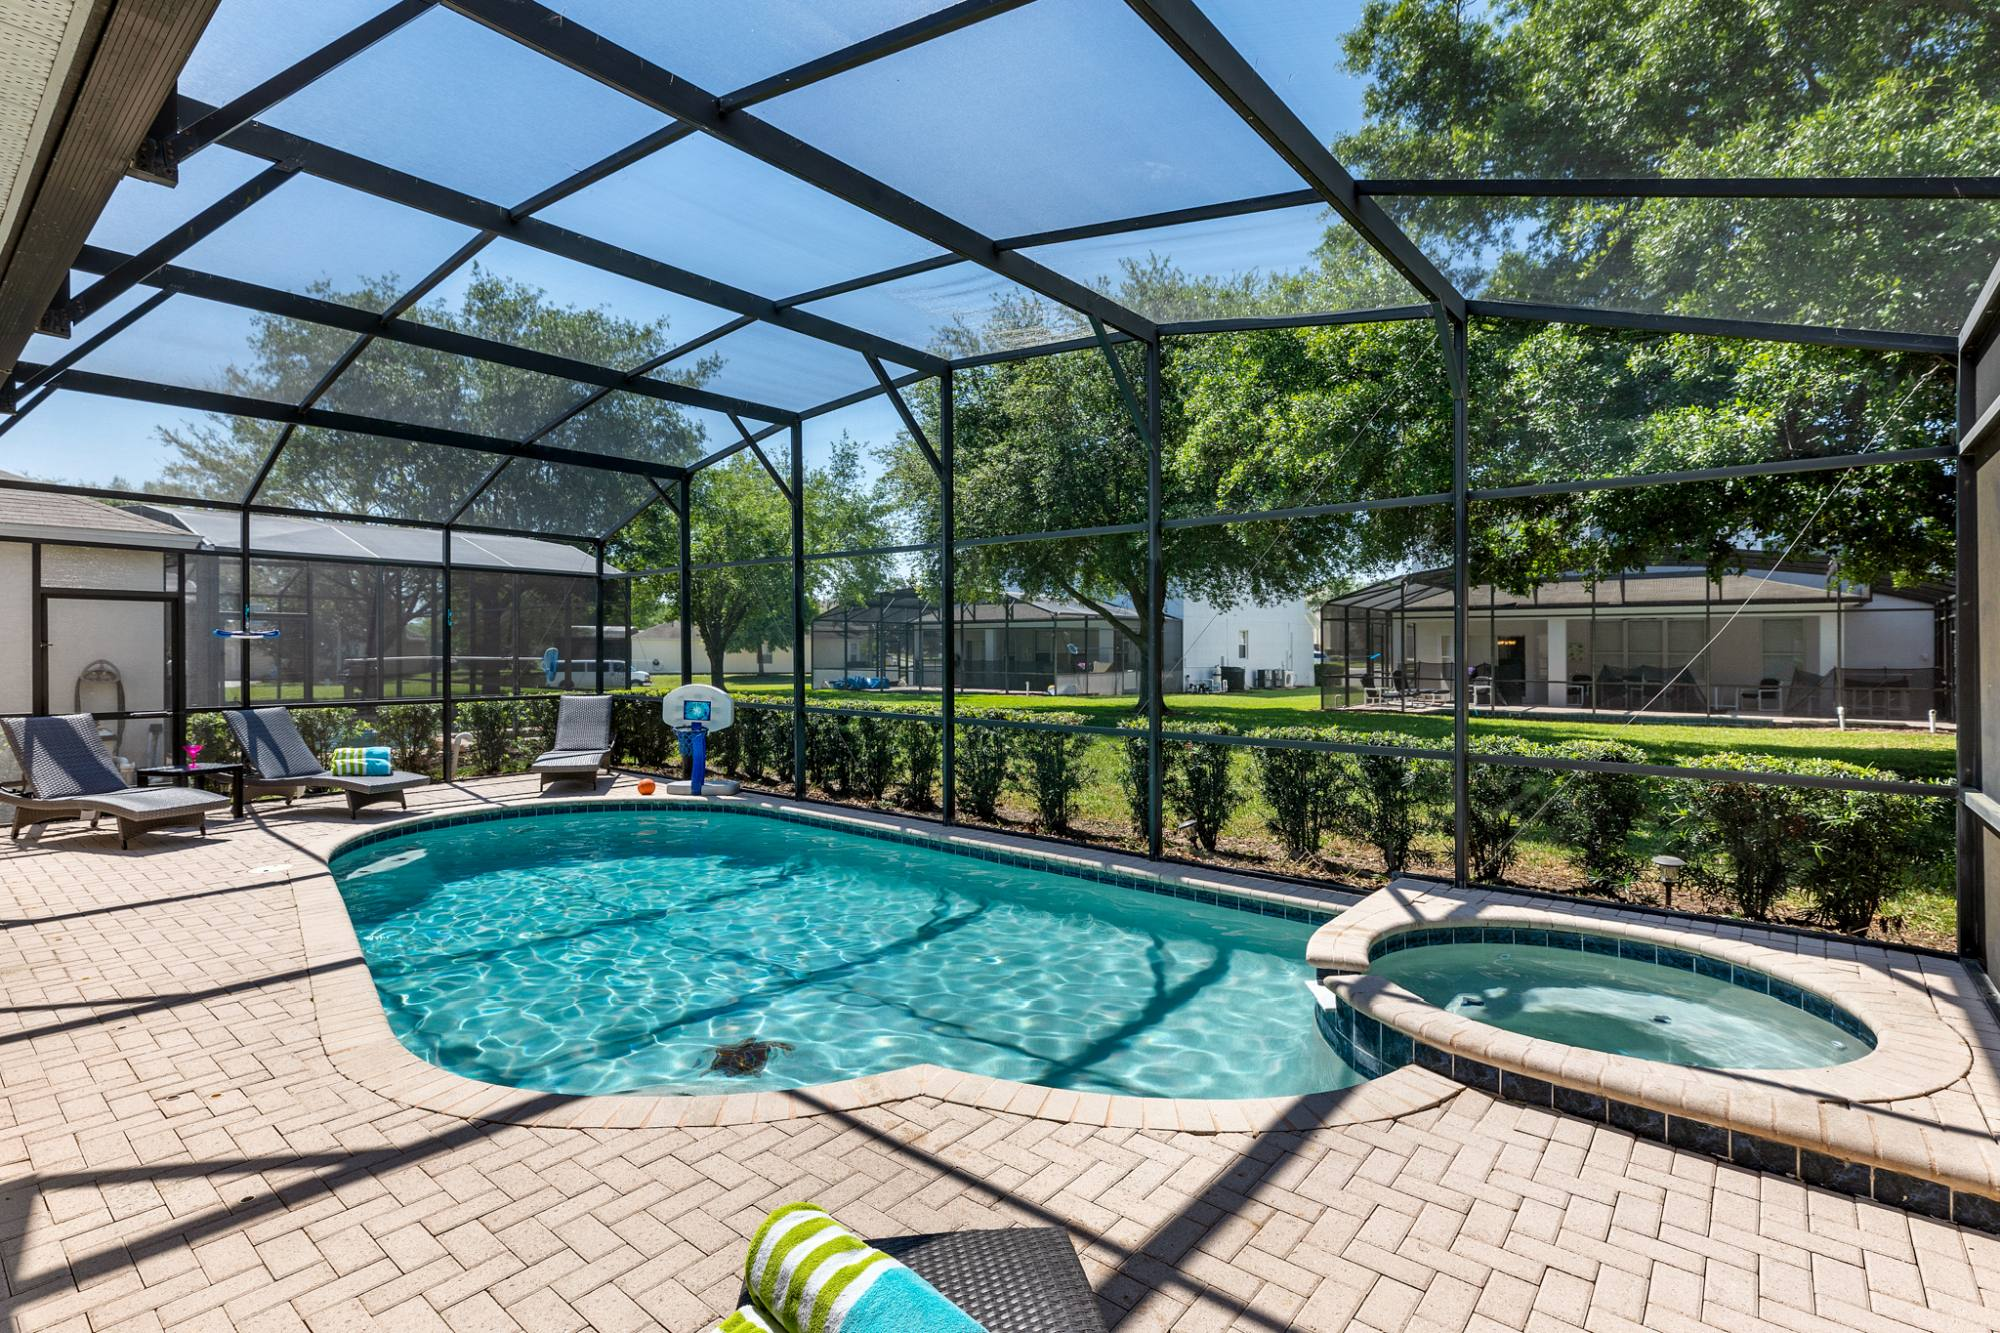 Your Disney Vacation Home's Pool and Hot Tub